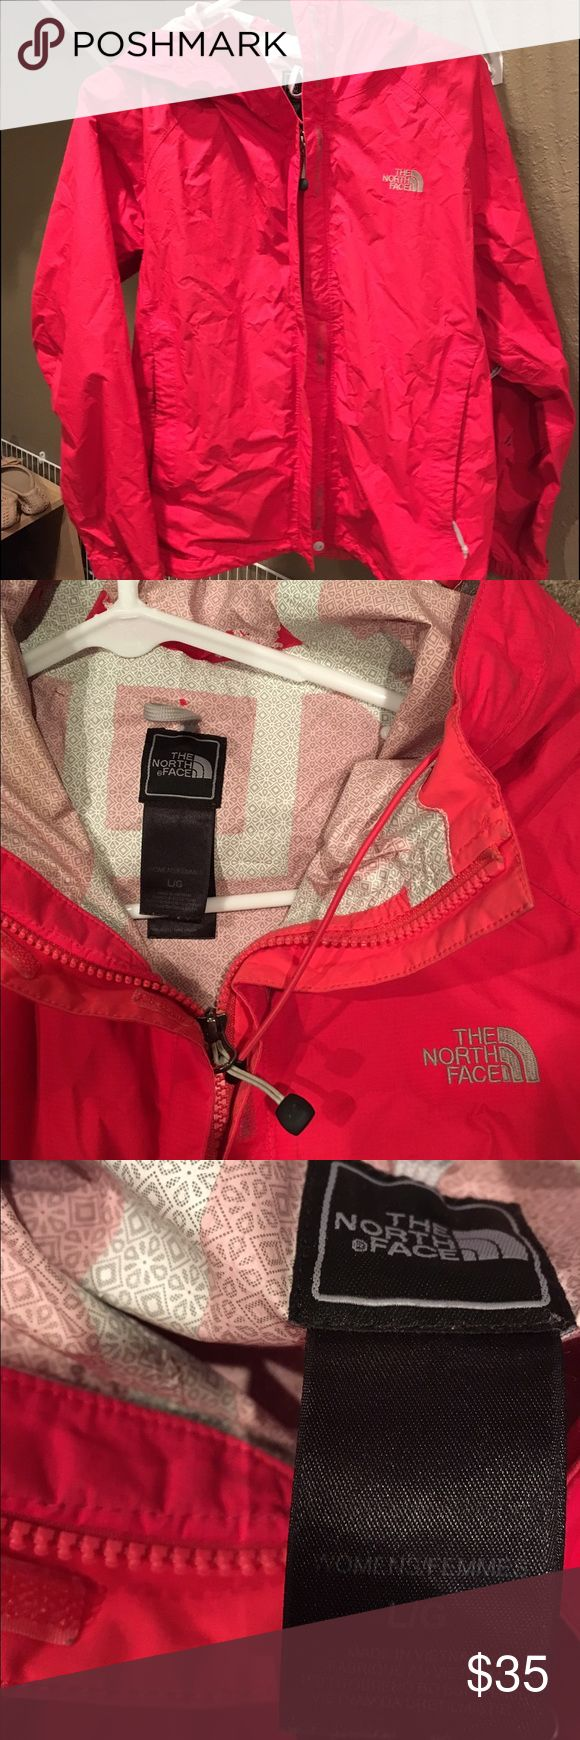 Pink North Face Rain Jacket - Hyvent DT - Large Hyvent DT North Face Rain Jacket. Pink/Coral. Women's Large. Used and has a couple of marks on it but still in great condition! Has underarm zips, pocket zips, adjustable waist, and Velcro wrists. All zippers work properly. Great rain jacket! North Face Jackets & Coats